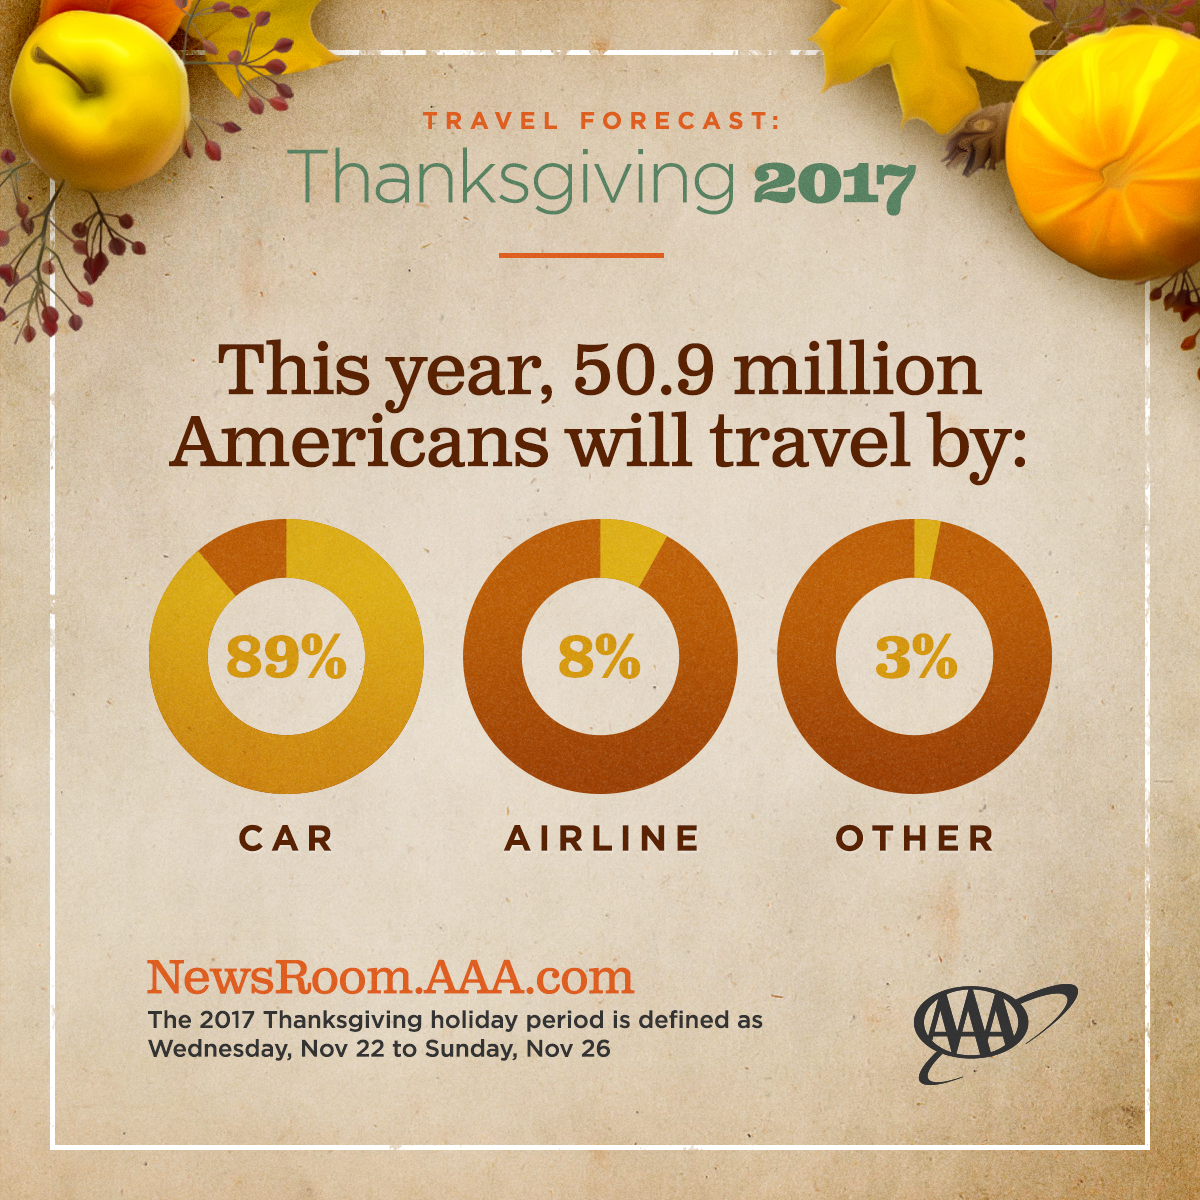 966c73e476f69fa42ac9_Thanksgiving_Infographic_3__Modes_of_Travel_.jpg